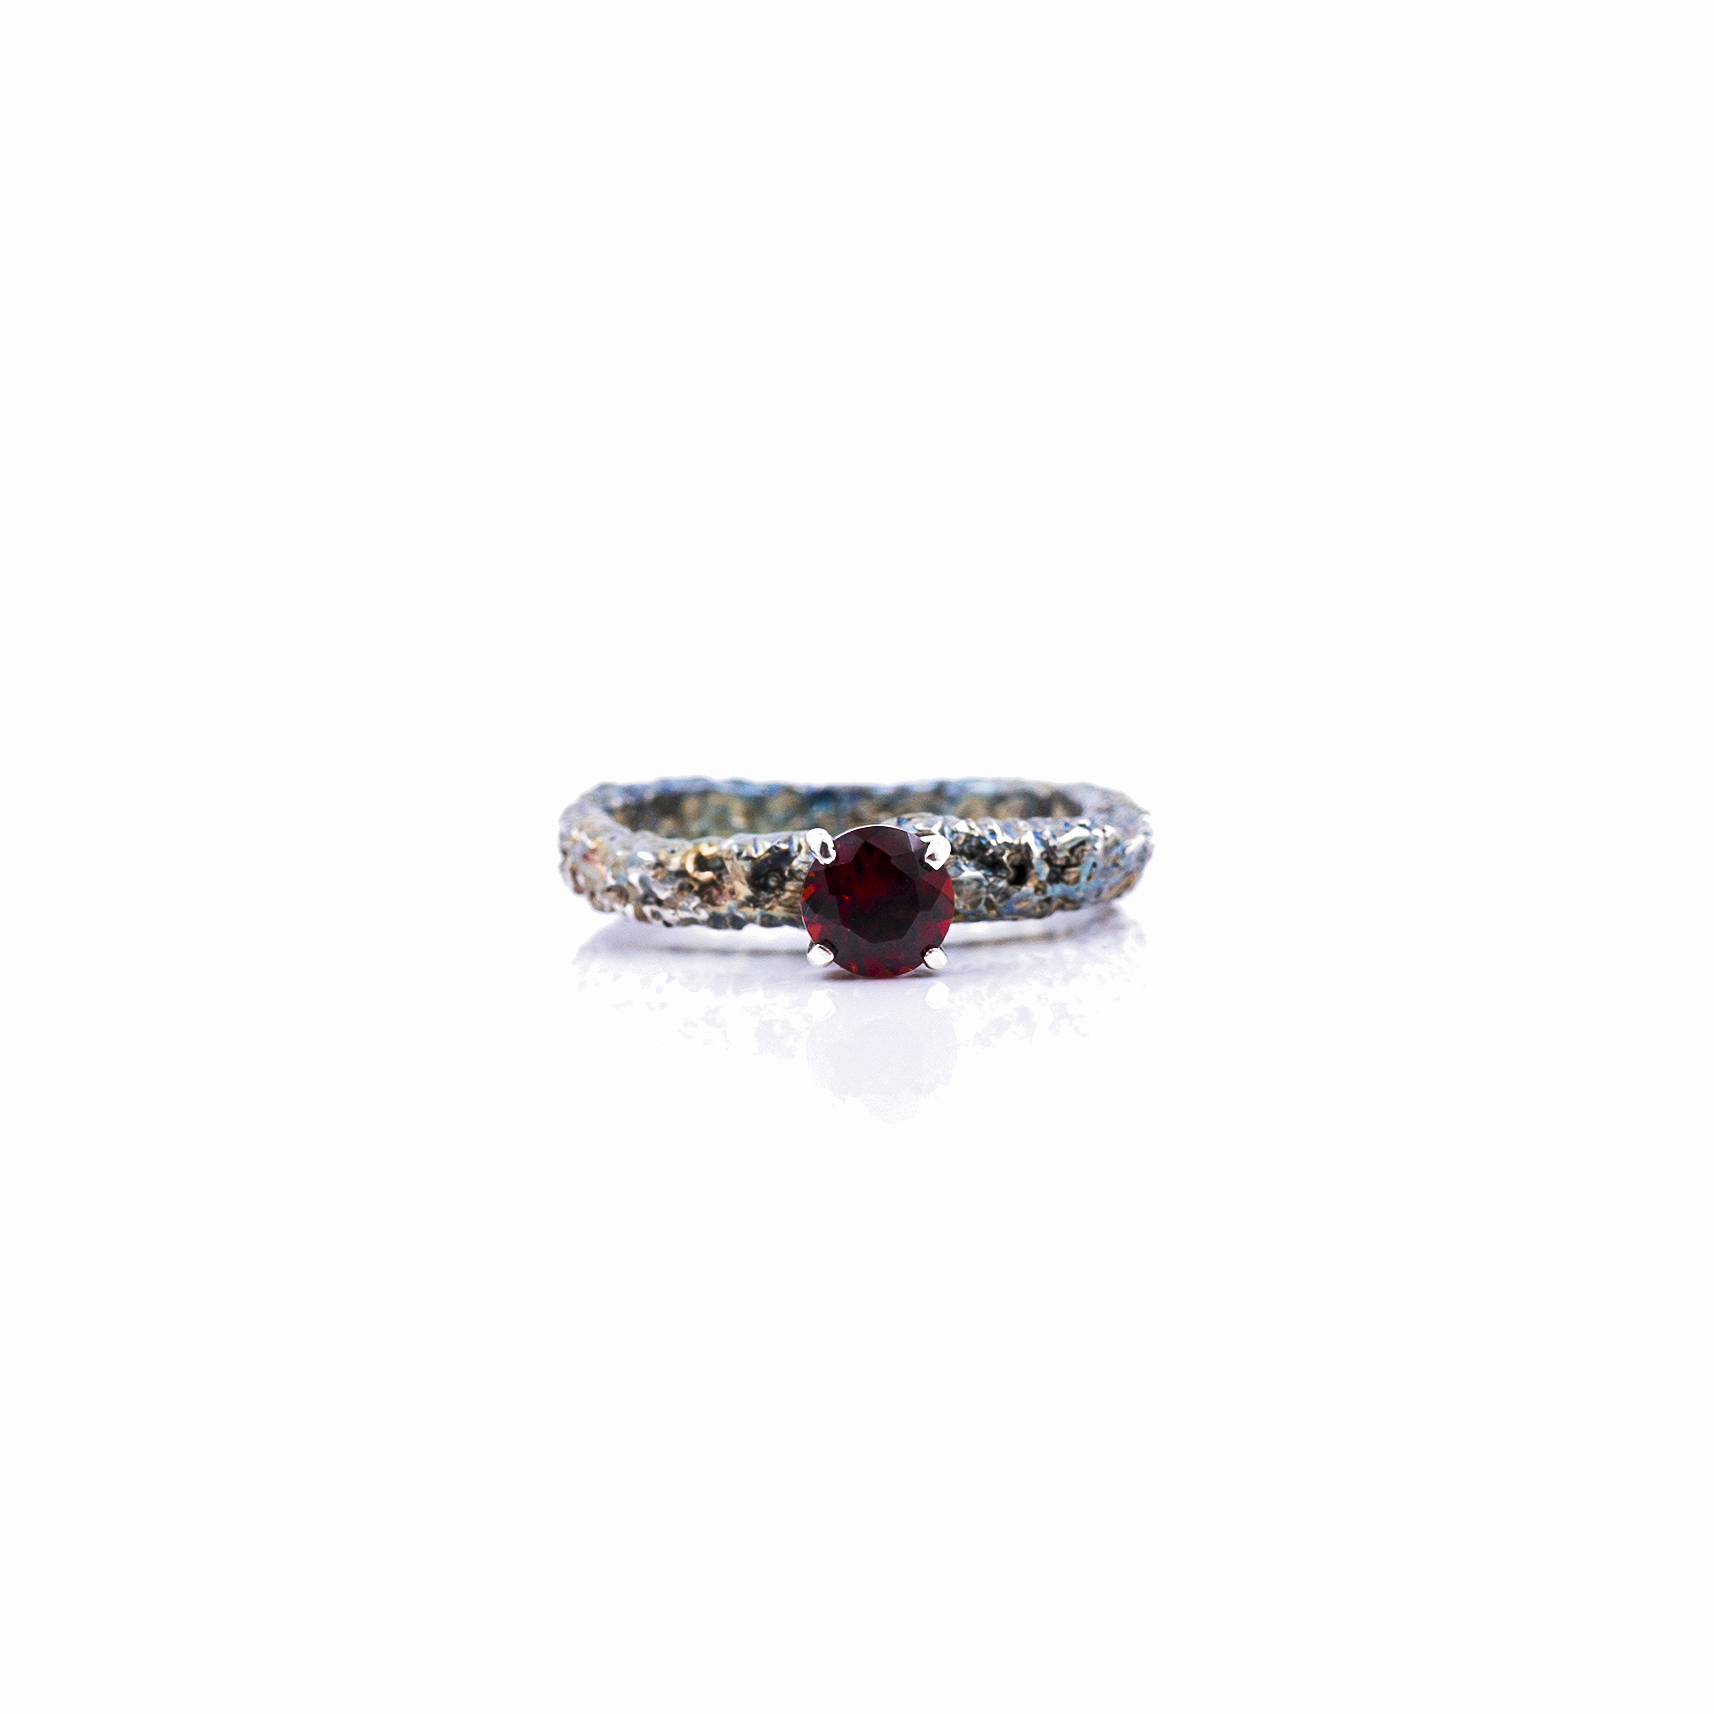 Graceful Inner Islands Solitaire Ring | Sterling silver, garnet, patina.